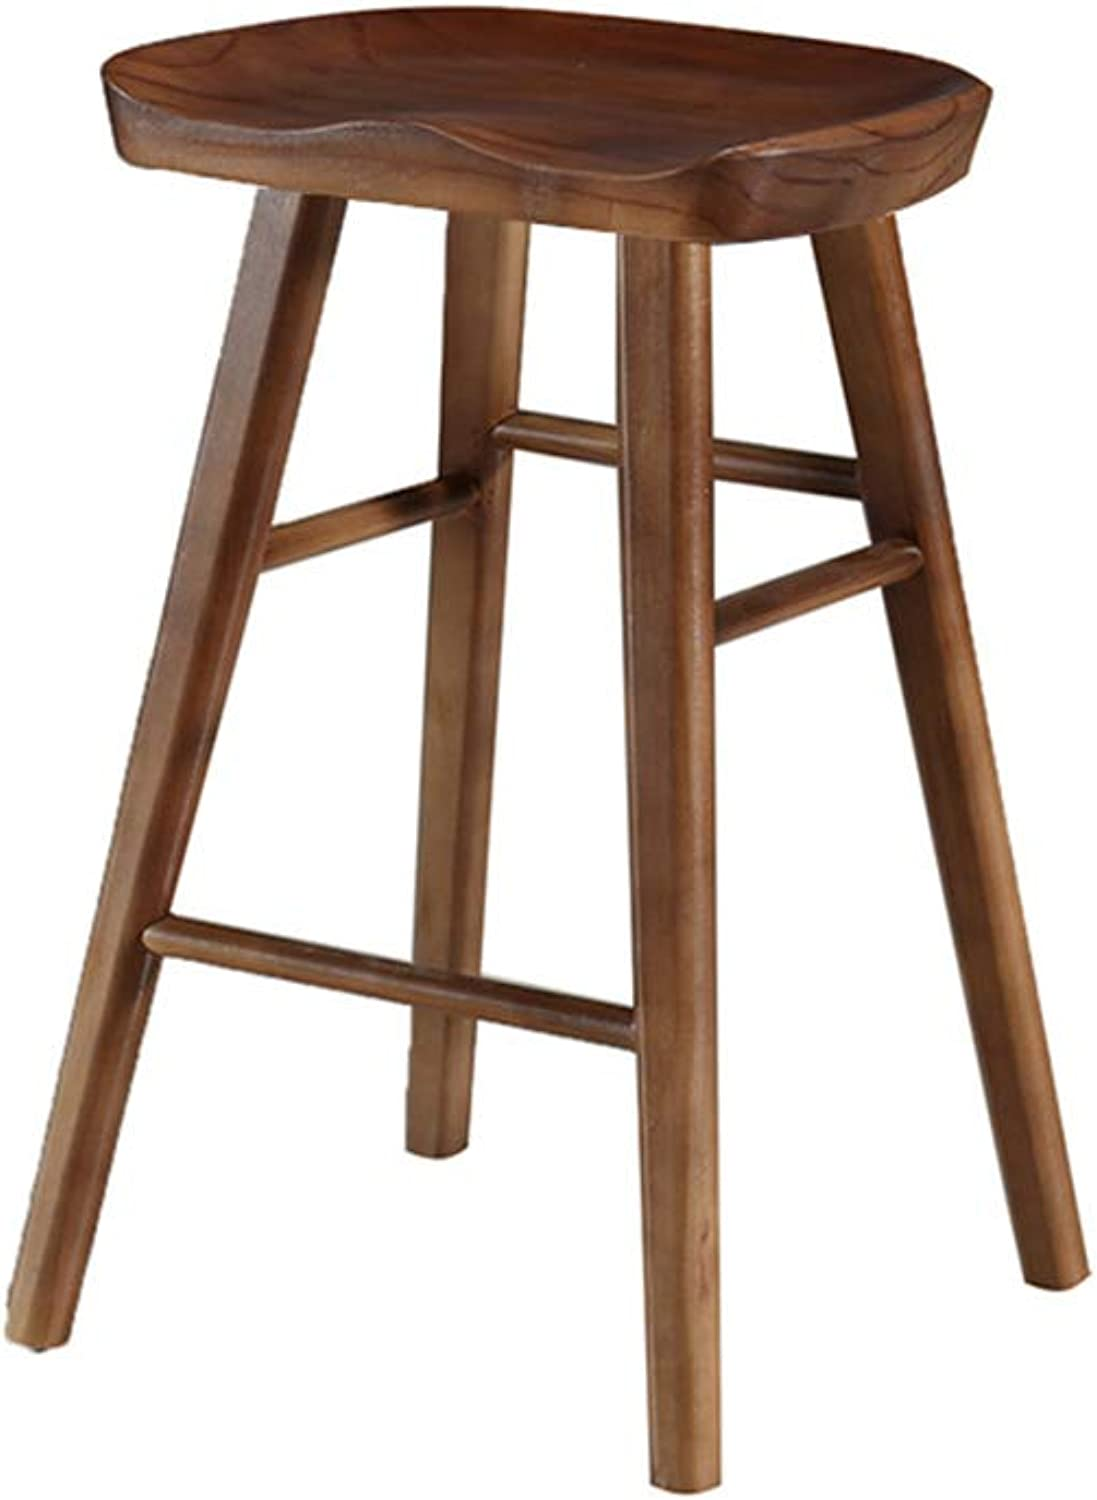 Bar Stool Modern Minimalist Bar Chair, Solid Wood Creative High Stools Suitable for Home Restaurant Cafe Front Desk (color   Dark Brown H 55cm)